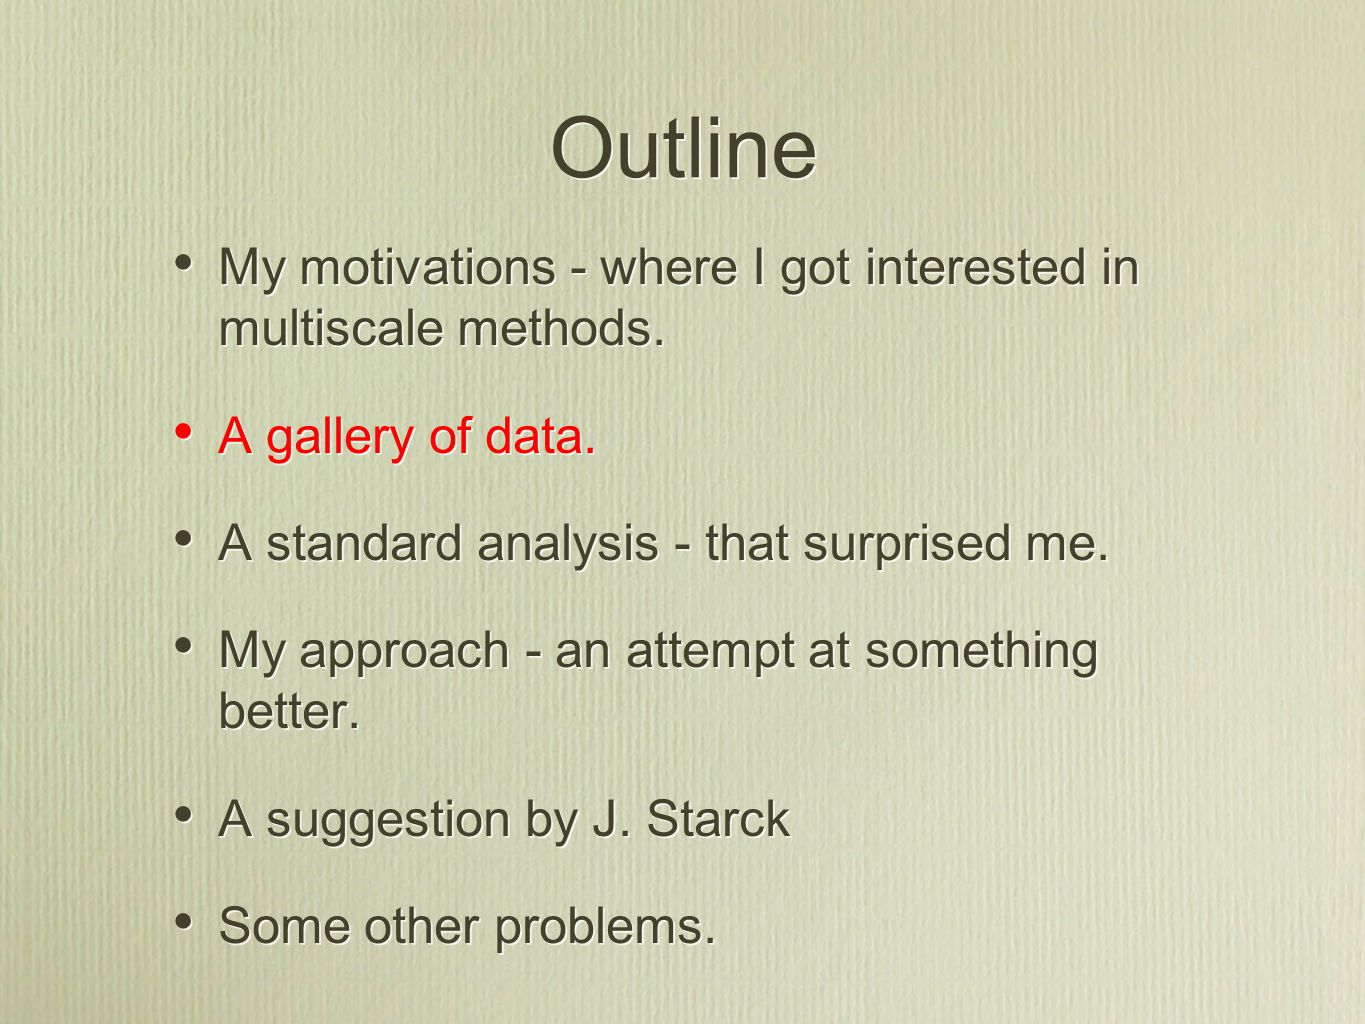 Outline My motivations - where I got interested in multiscale methods. A gallery of data. A standard analysis - that surprised me. My approach - an at